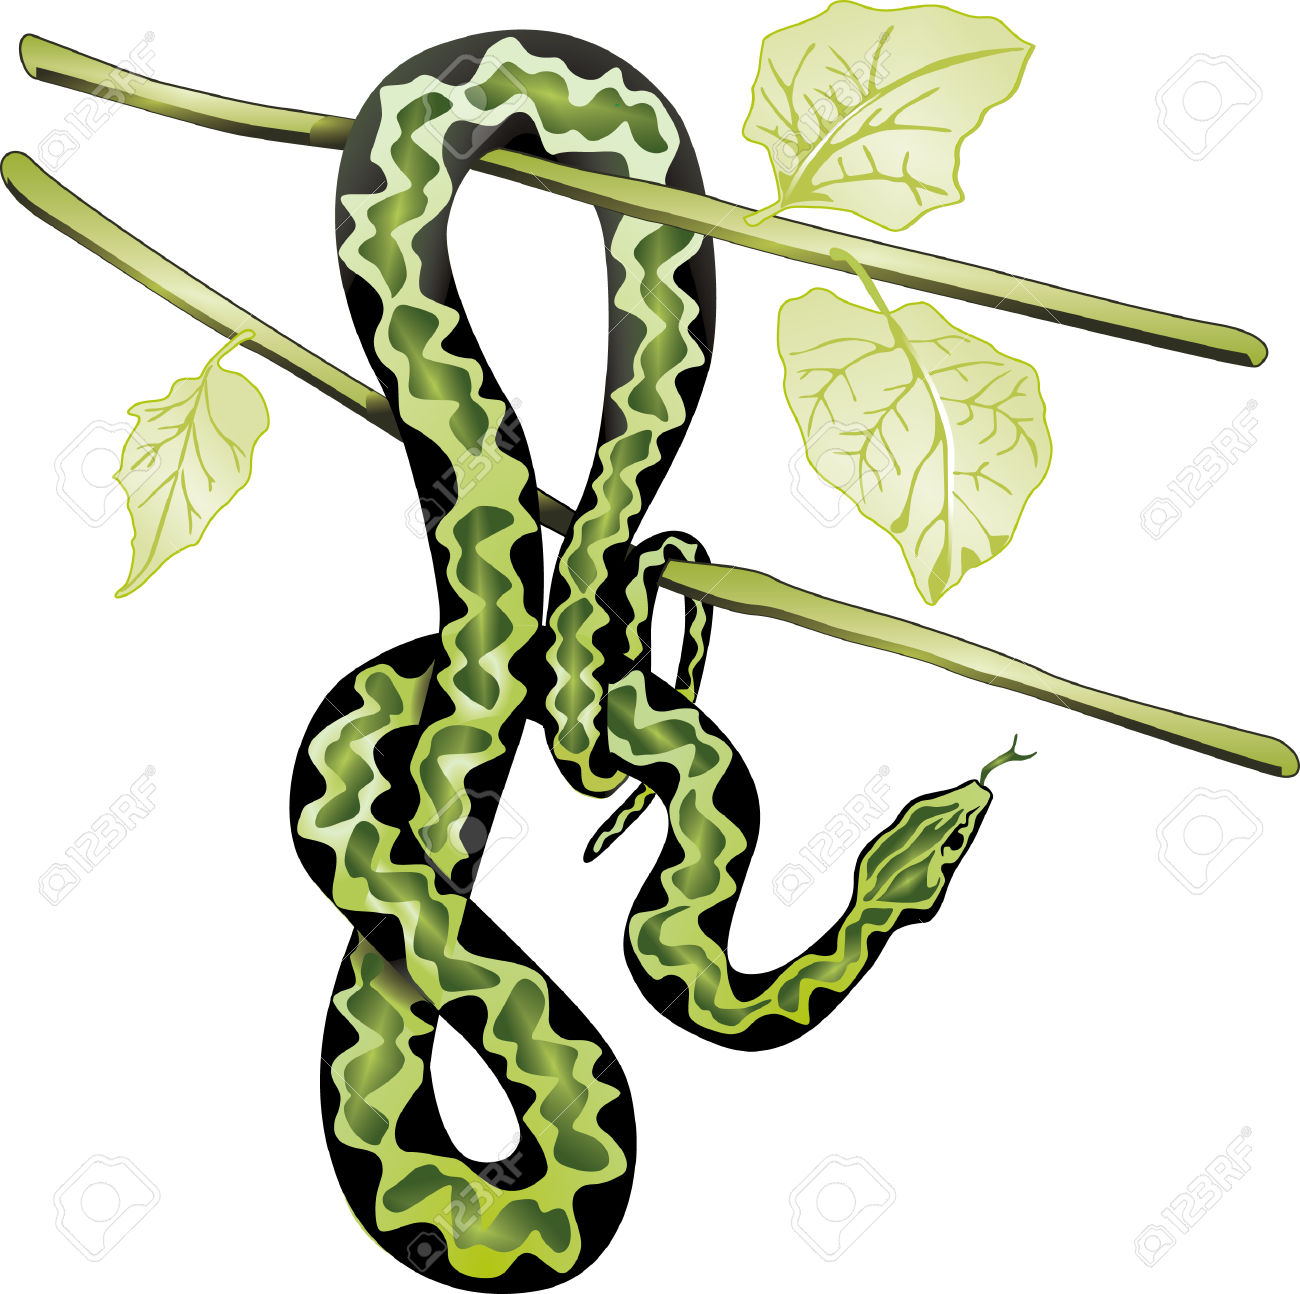 Snake On Tree Royalty Free Cliparts, Vectors, And Stock.